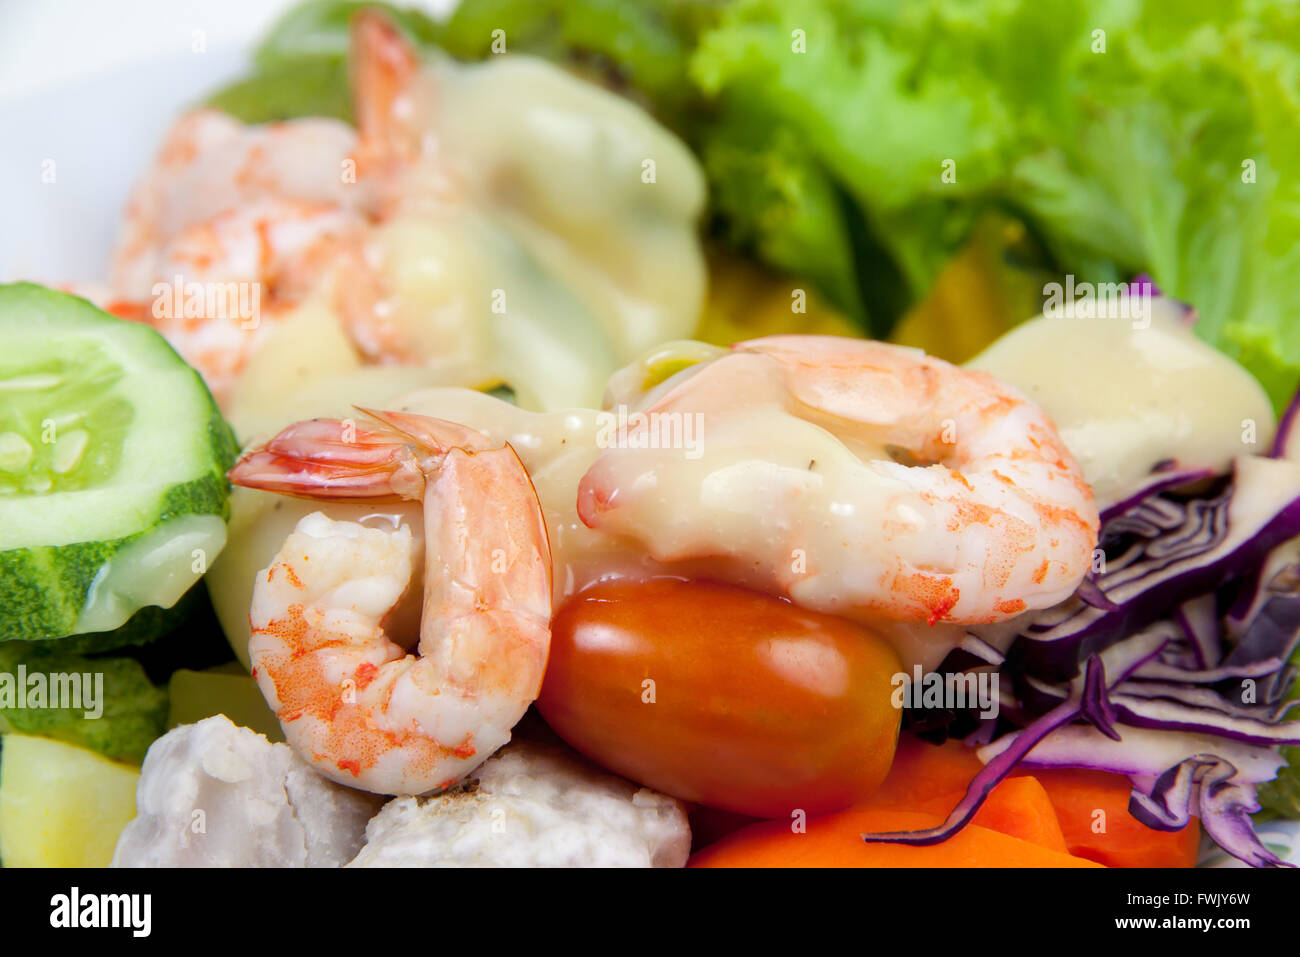 closeup boiled shrimp and vegetables and fruits put salad dressing